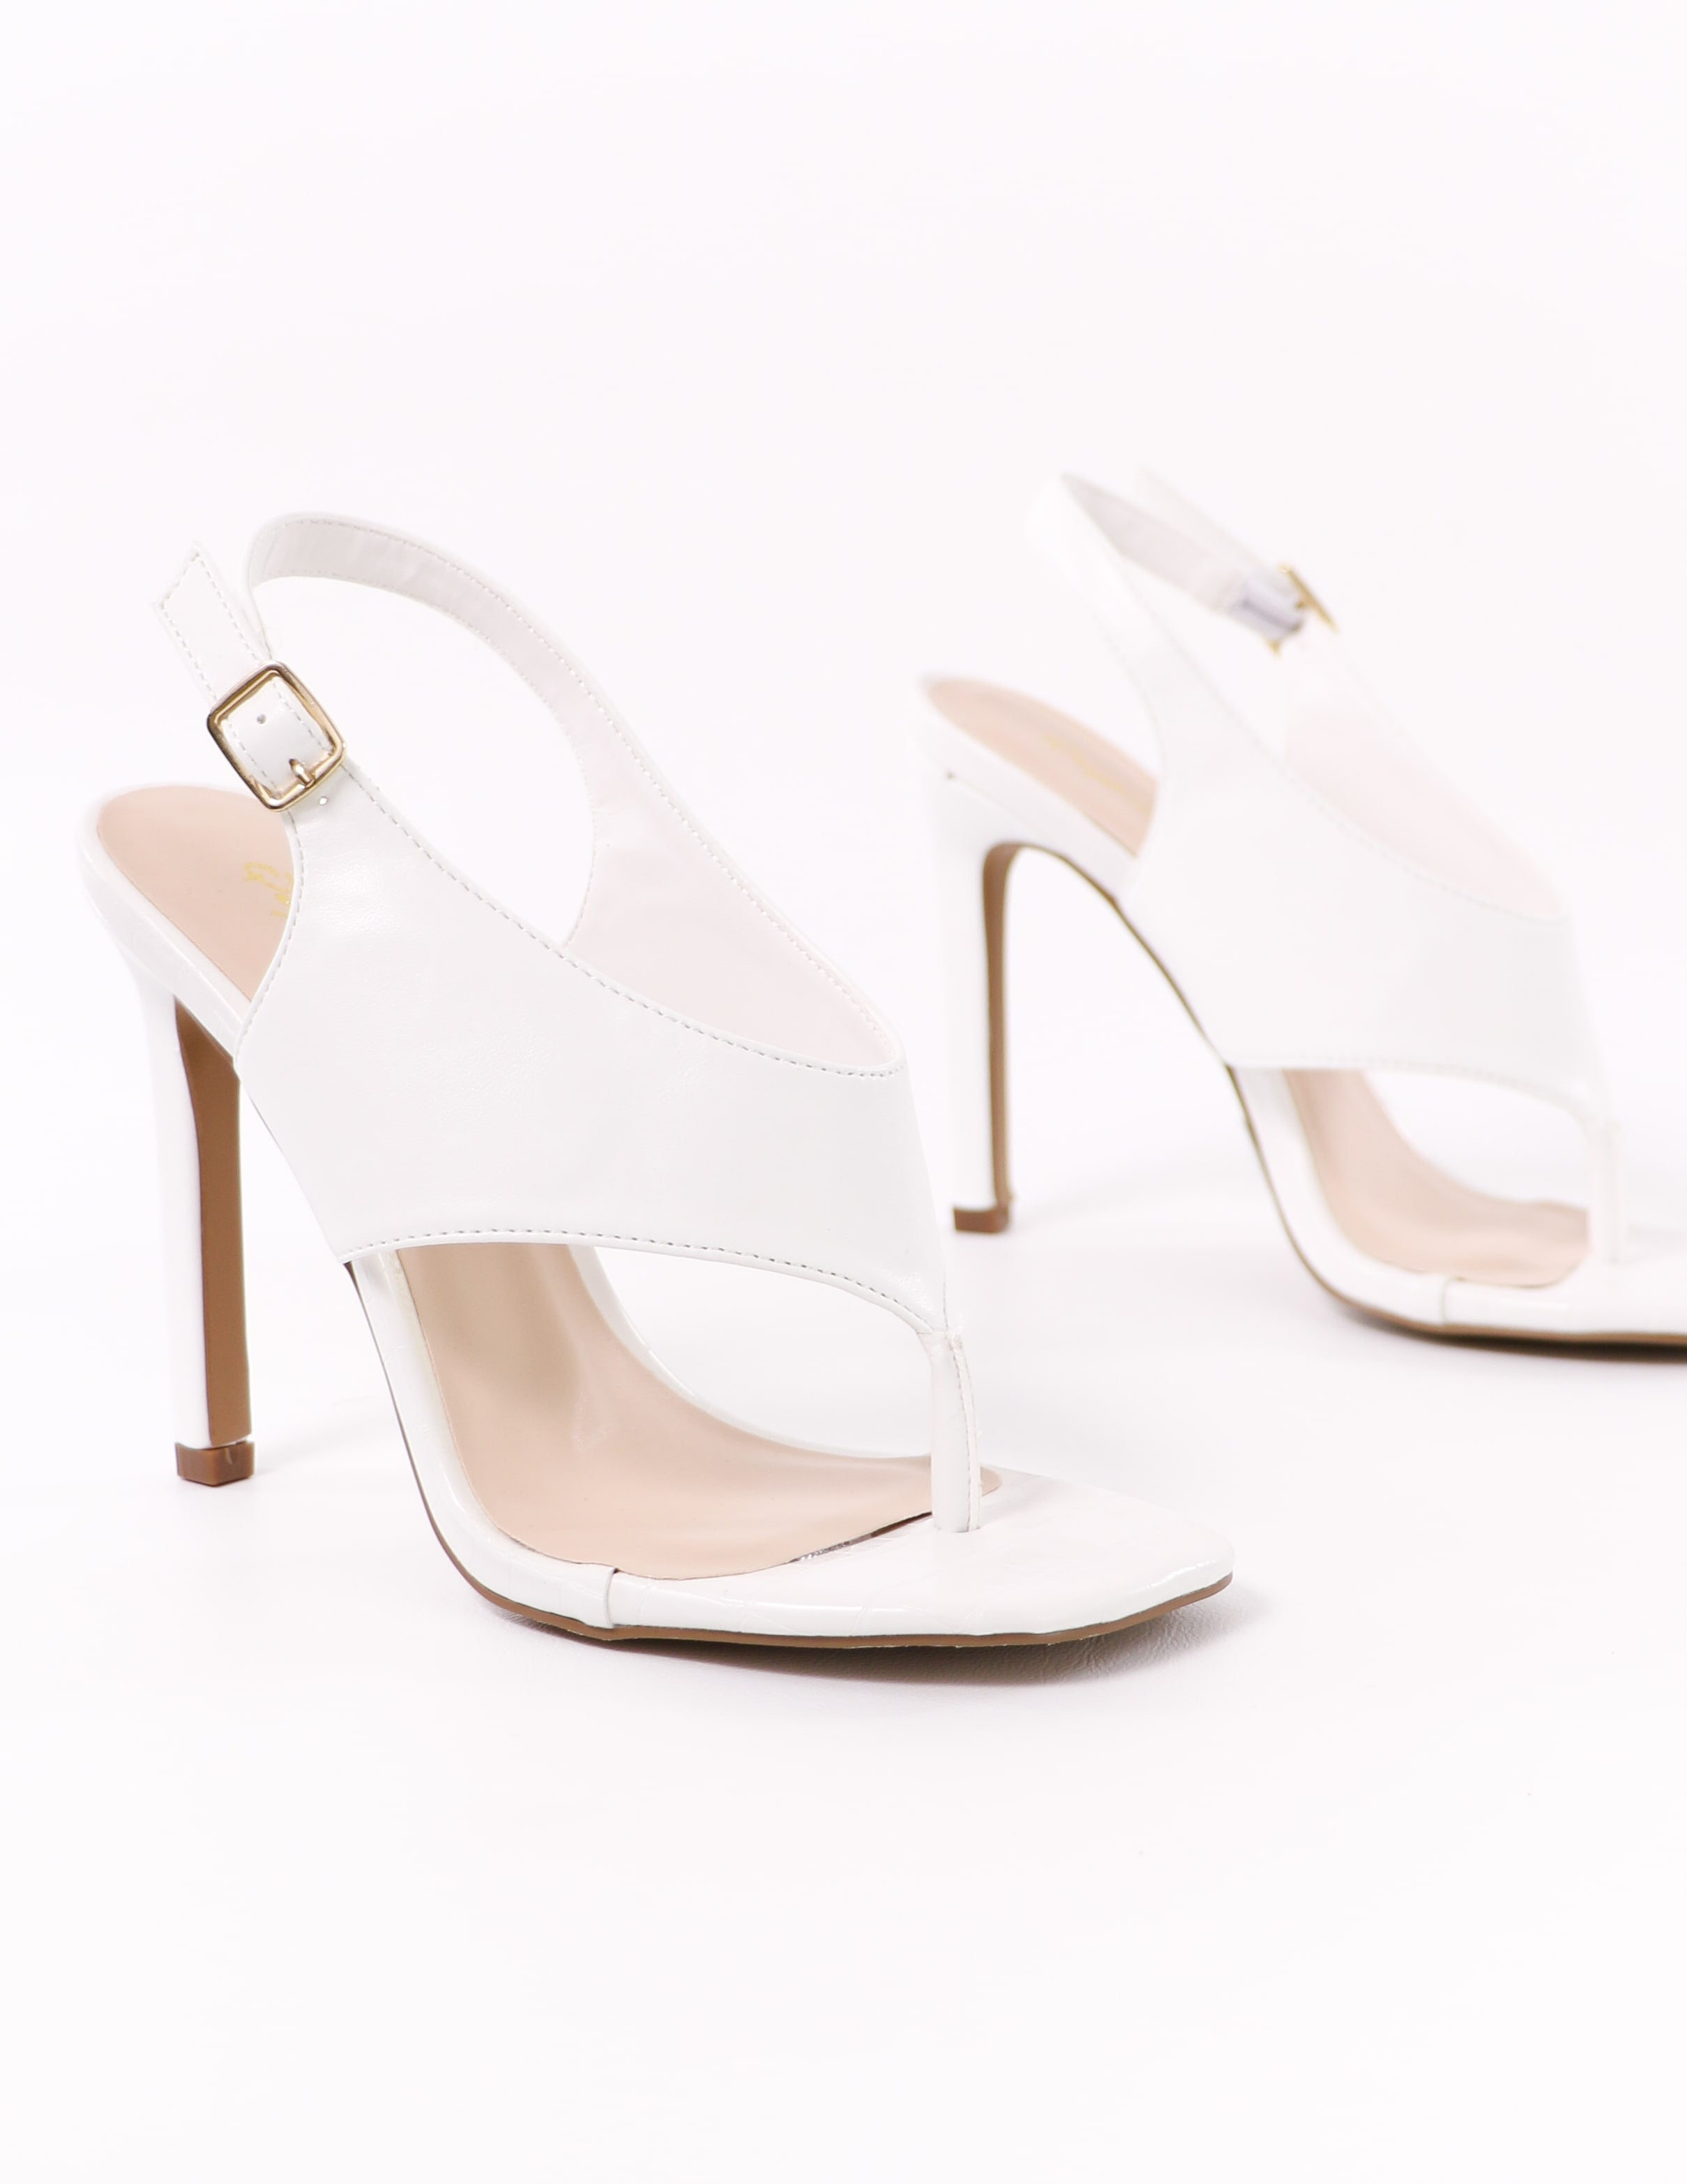 white club can't sandal me stiletto heel on white background - elle bleu shoes